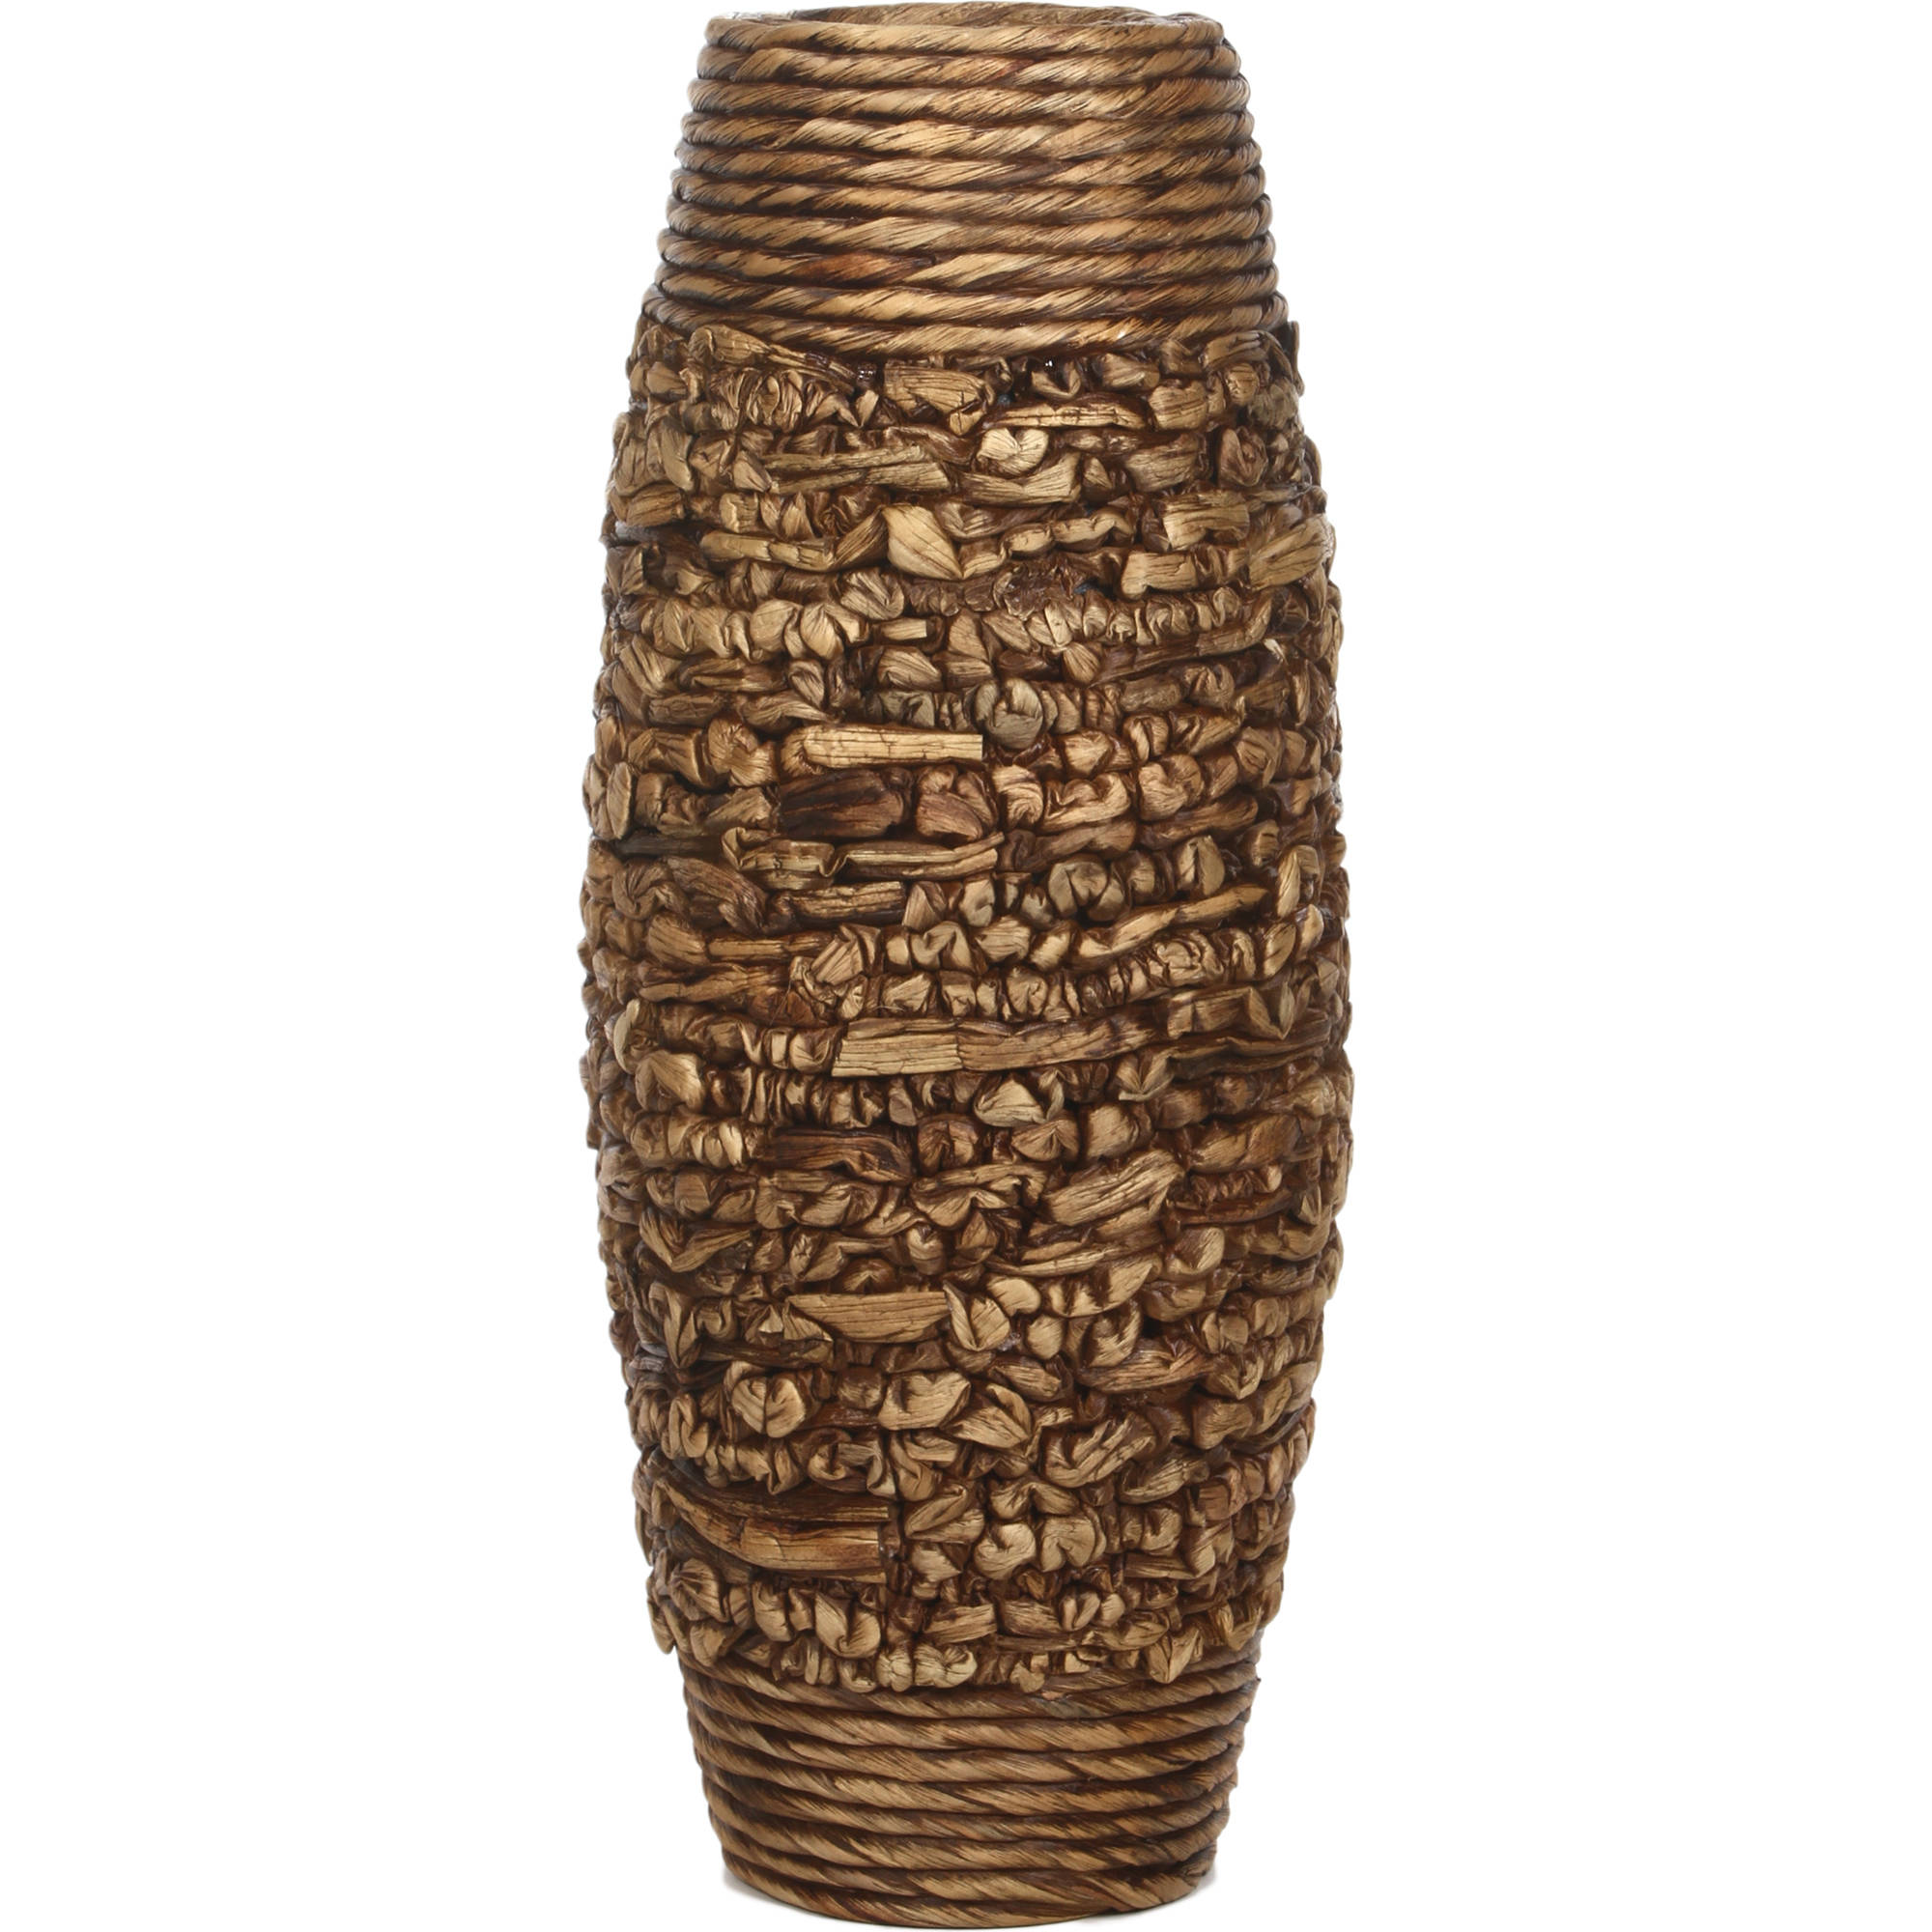 Elegant Expressions by Hosley Natural Hyacinth Vase, Brown